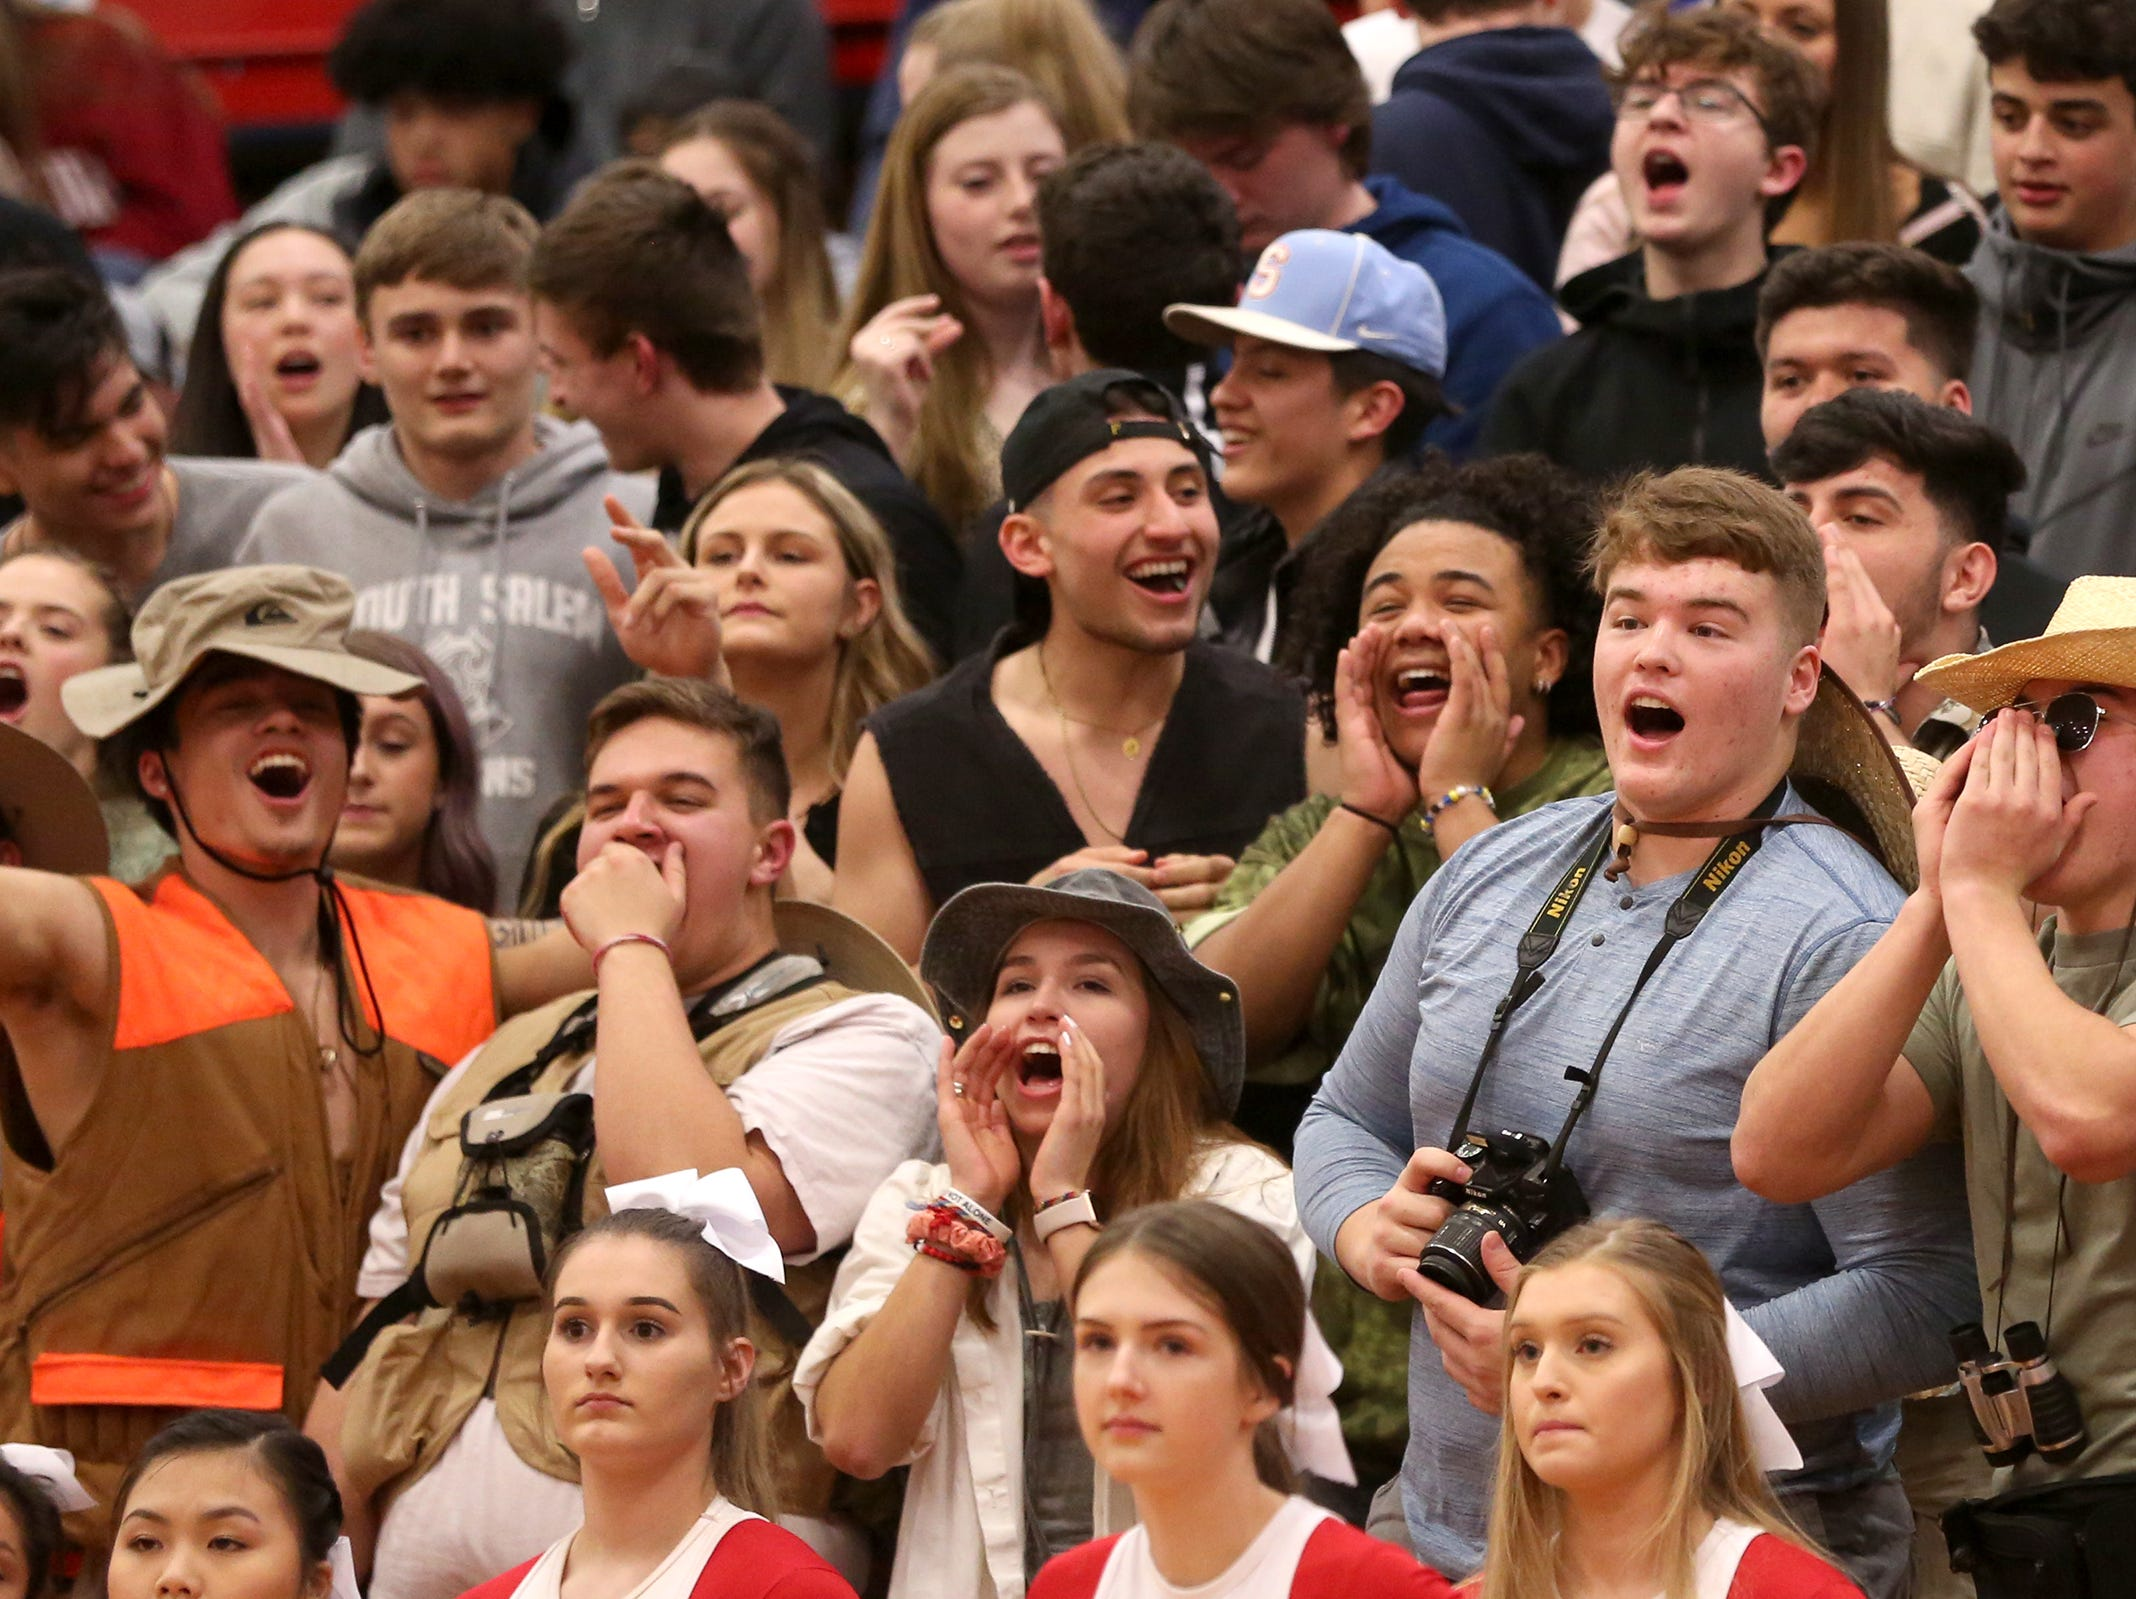 South Salem students cheer on their team during the South Salem vs. West Linn boys basketball OSAA playoff game at South Salem High School on Friday, March 1, 2019.